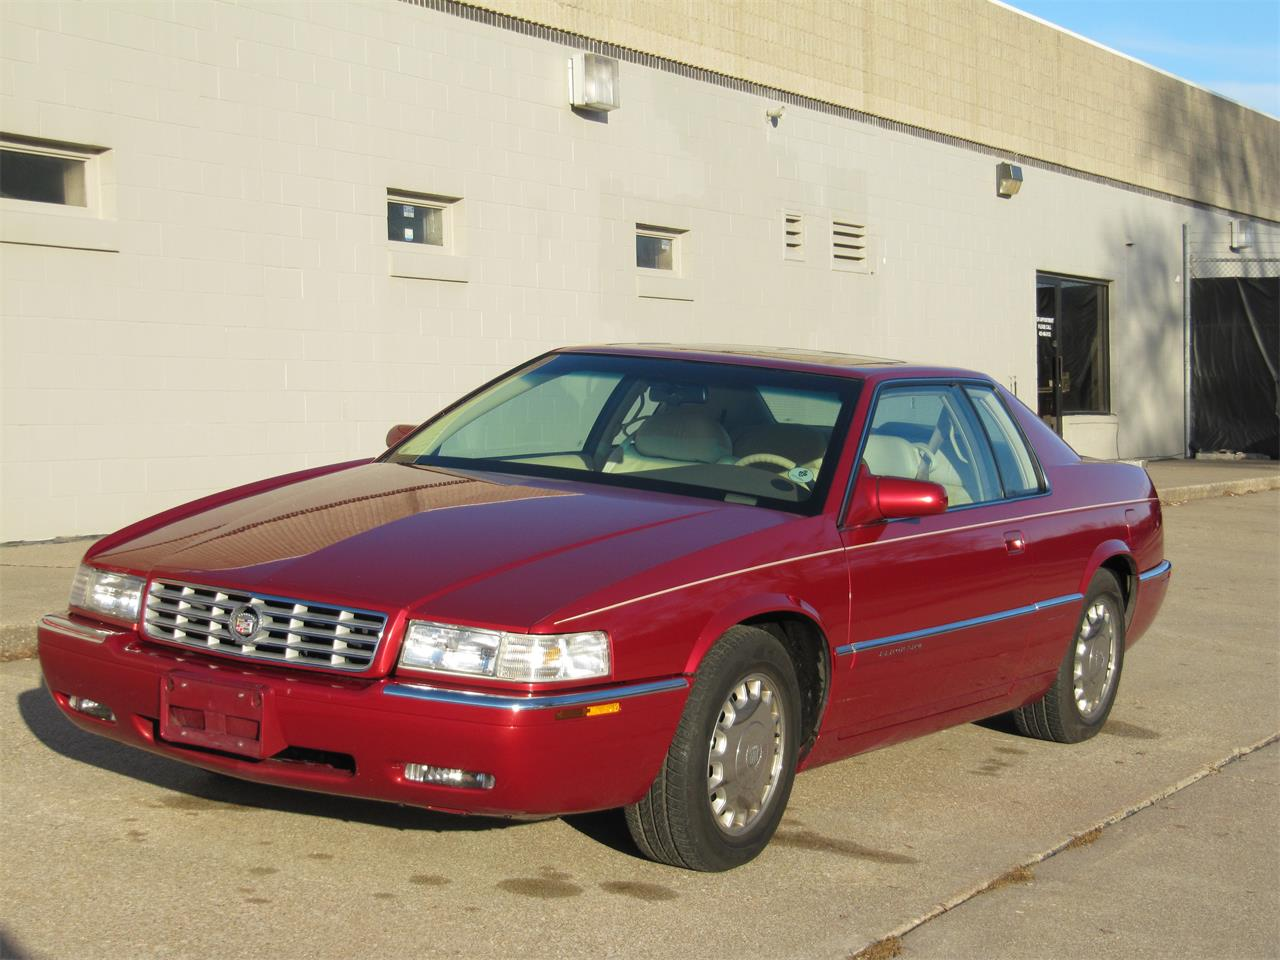 1995 cadillac eldorado for sale classiccars com cc 1173246 1995 cadillac eldorado for sale